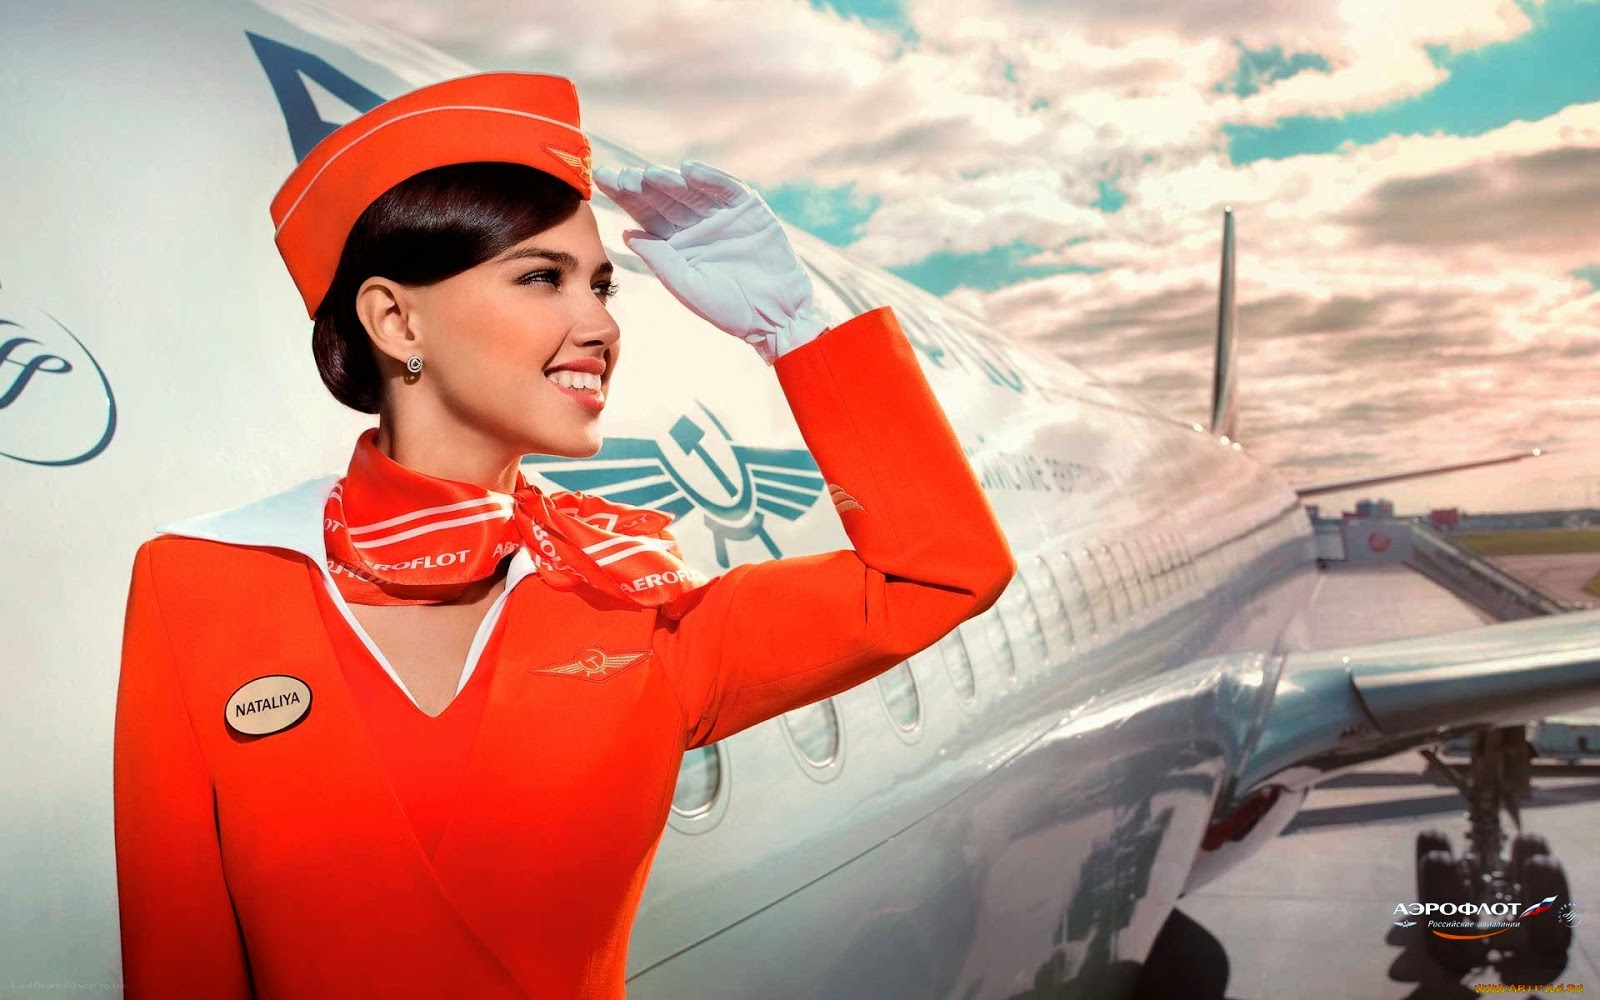 Aeroflot Stewardess Official Wallpaper World stewardess Crews 1600x1000